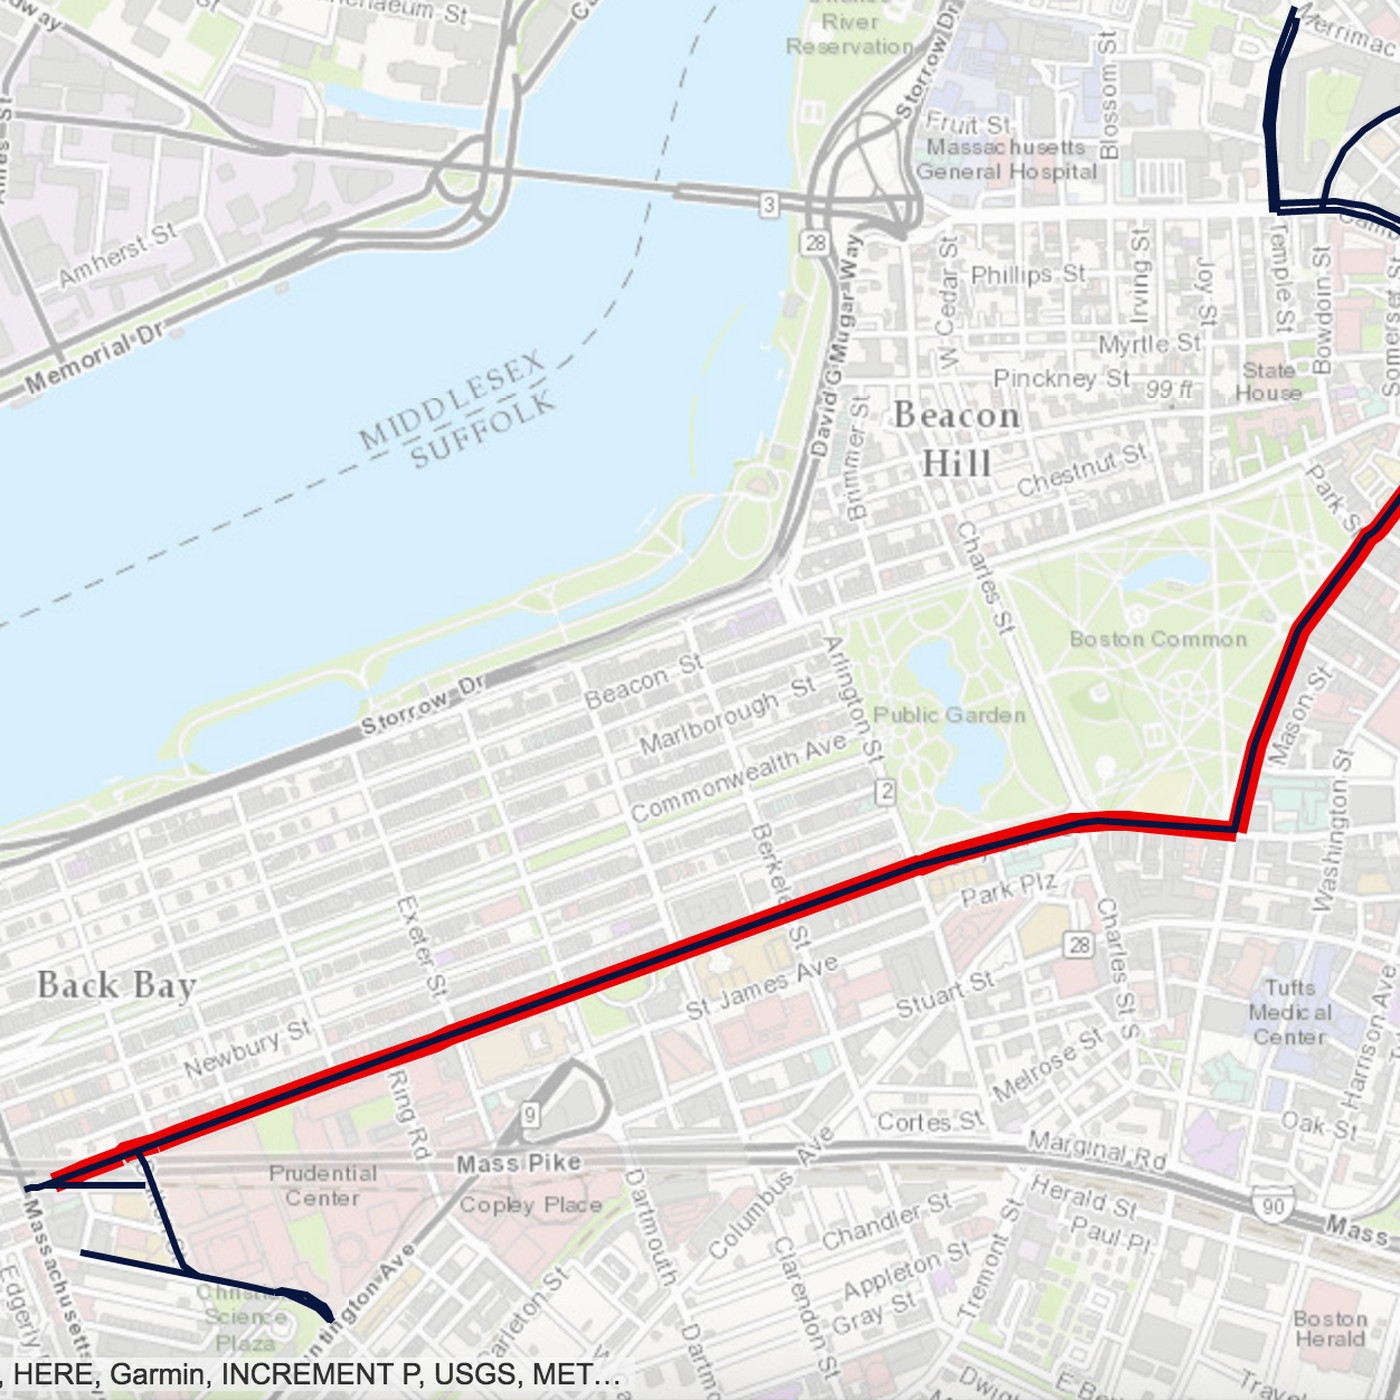 Patriots Super Bowl Parade 2017: Map, Route, And Road throughout Map Of Super Bowl Road Closures